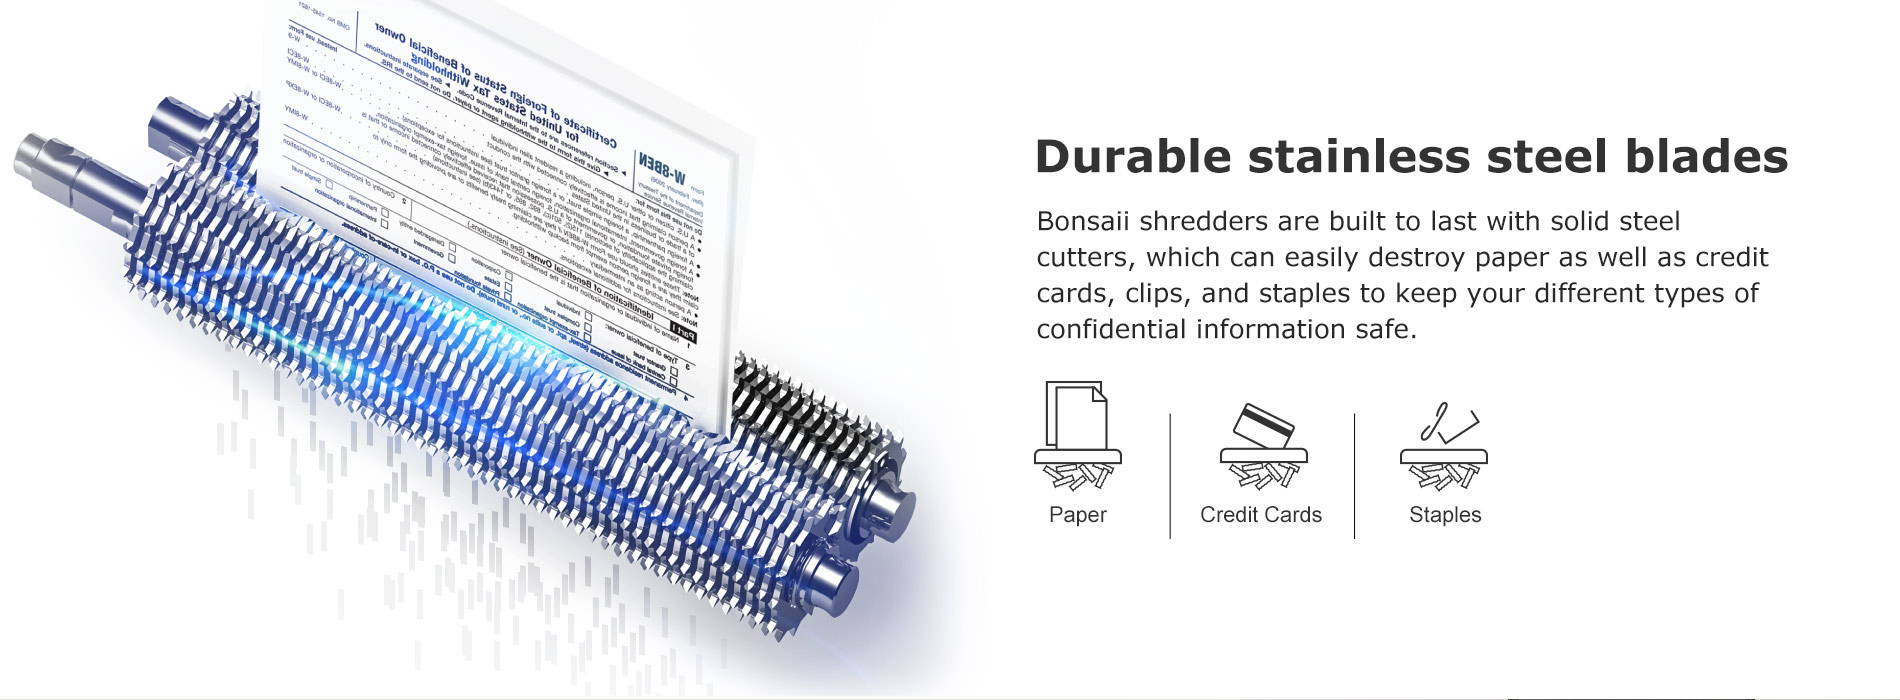 Durable stainless steel blades Bonsaii shredders are built to last with solid steel cutters, which can easily destroy paper as well as credit cards, clips, and staples to keep your different types of confidential information safe.